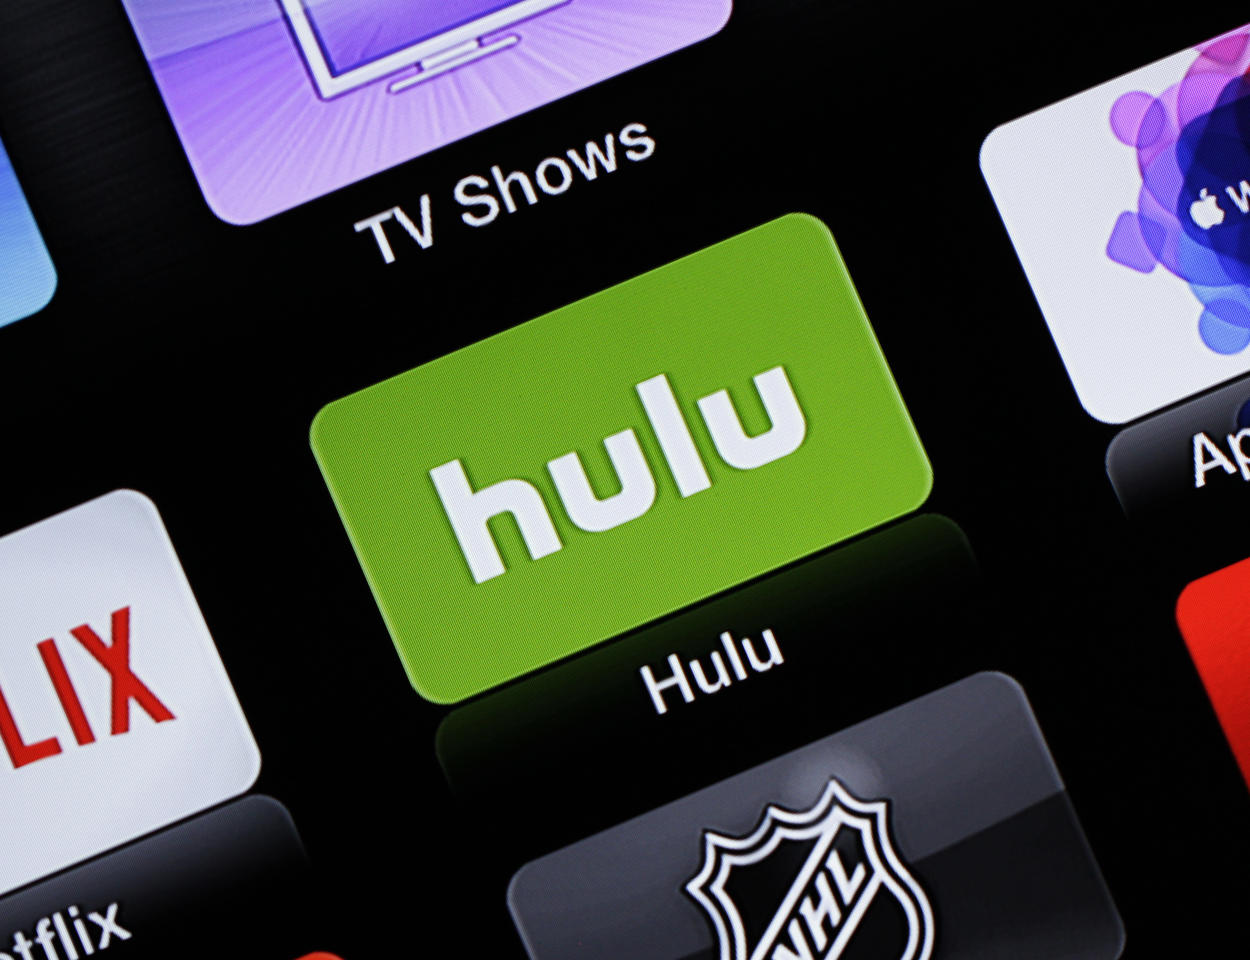 FILE - This June 24, 2015, file photo shows the Hulu Apple TV app icon. Nielsen says it will start counting how many people are watching live TV services from online streaming companies Hulu and YouTube, giving media companies and advertisers more insight on how many folks are watching network shows beyond the traditional TV screen. (AP Photo/Dan Goodman, File)